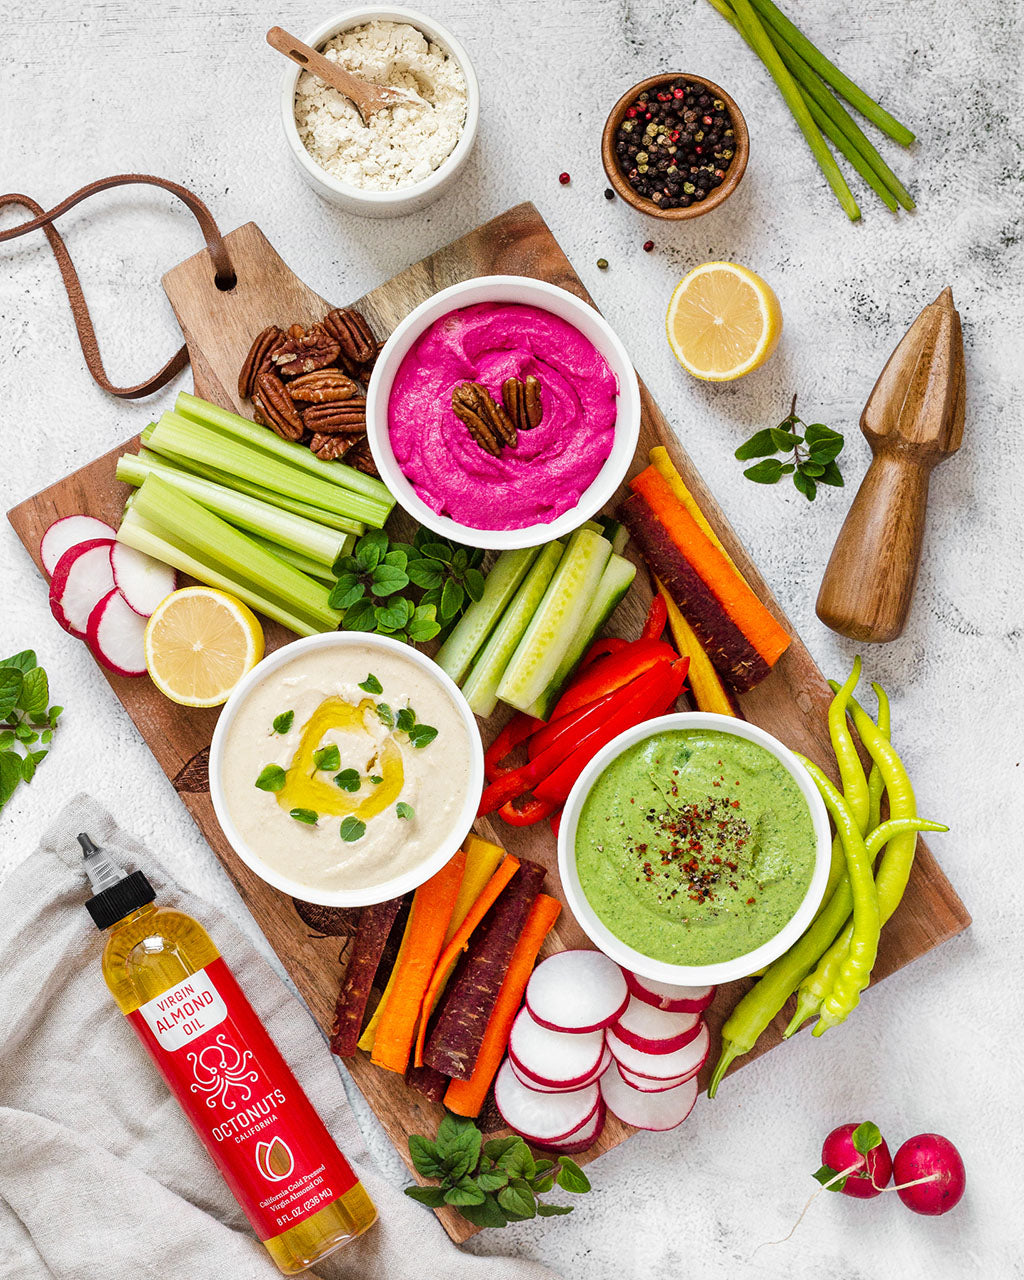 Plain, Beet and Spinach Almond Oil Hummus